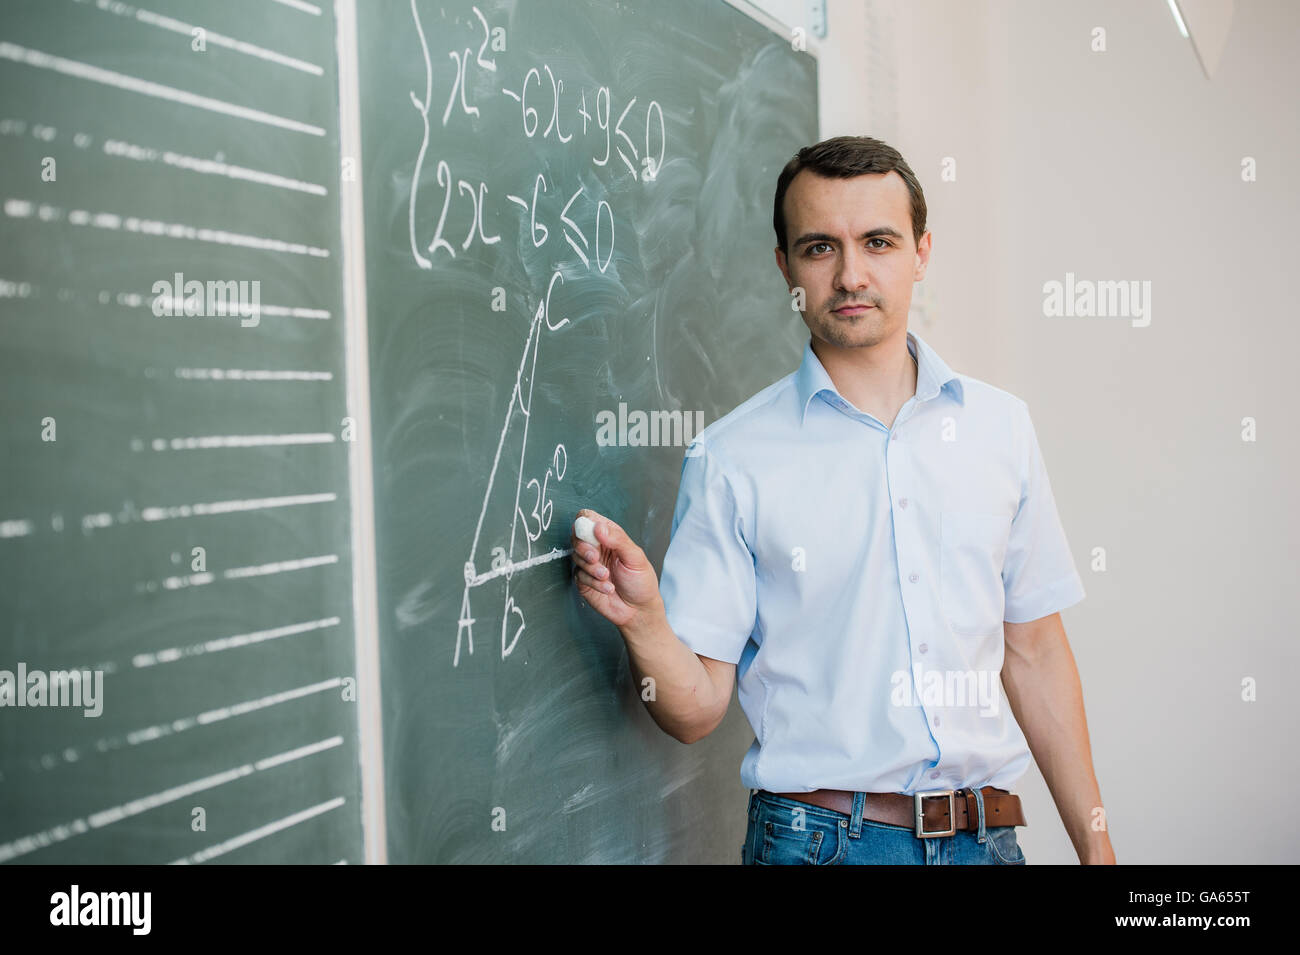 Young male teacher or student holding chalk writing on chalkboard in classroom - Stock Image